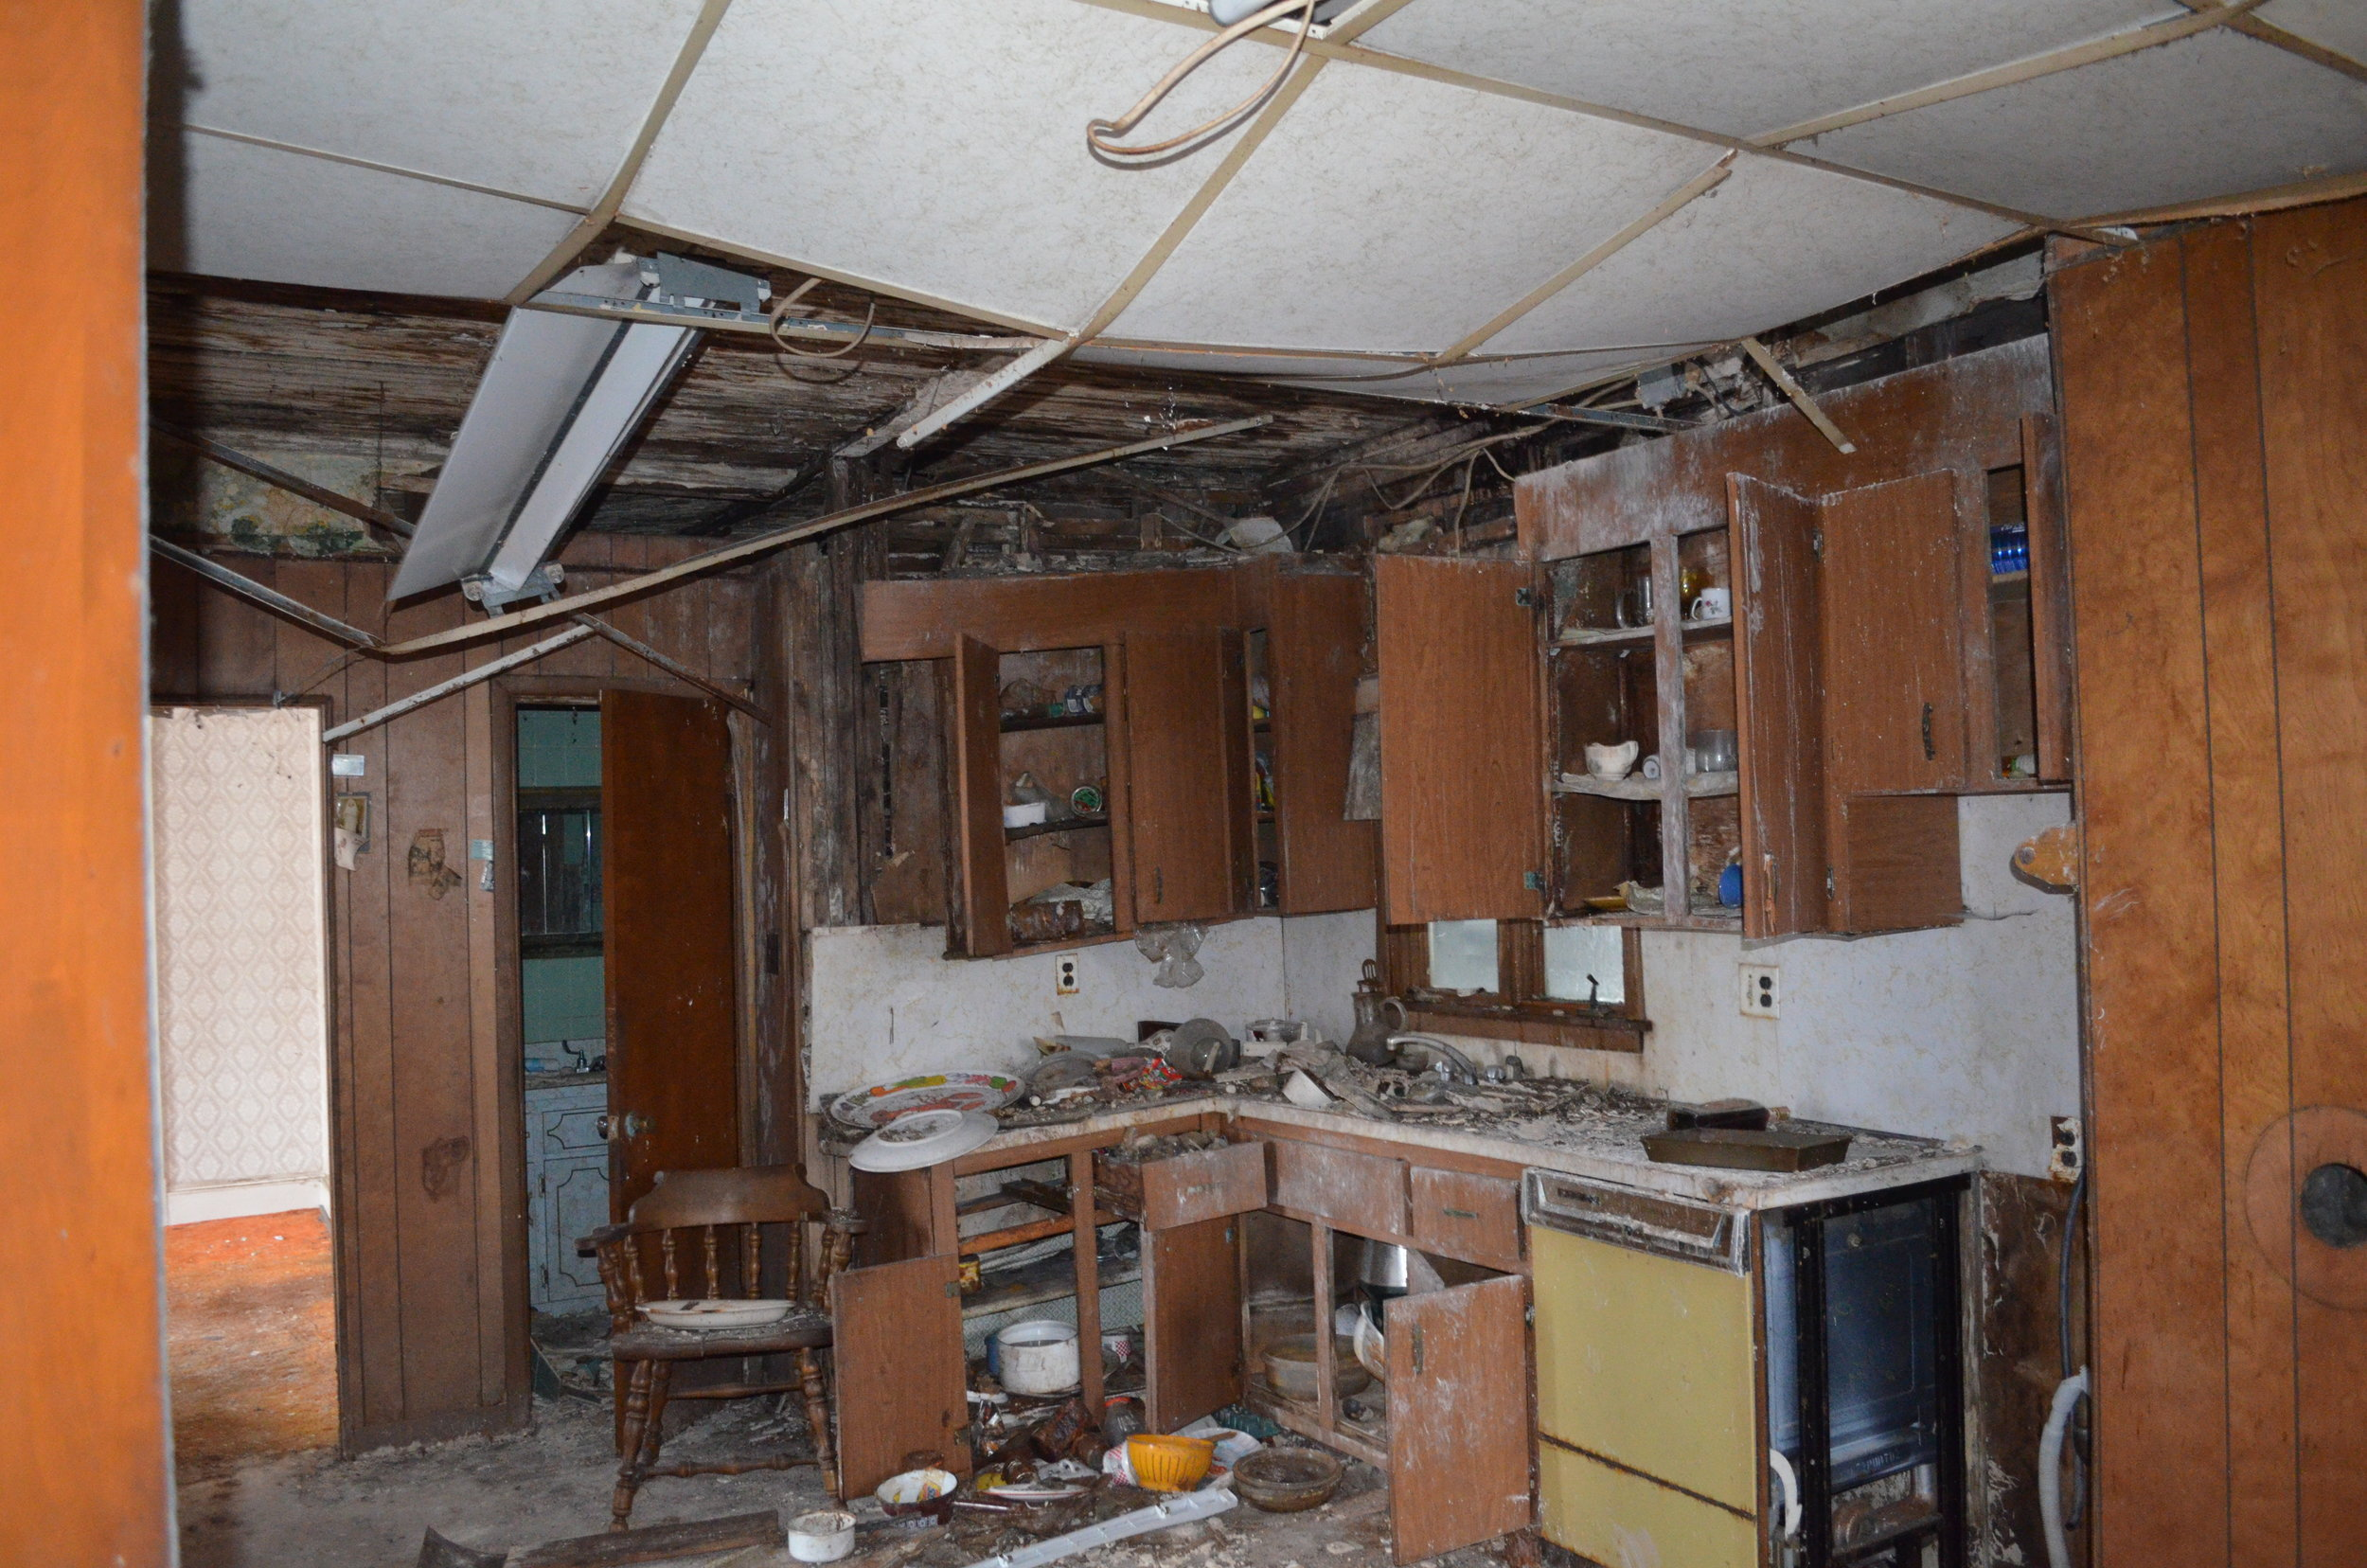 Inside the home, so much had collapsed or decayed that it seemed nature was taking this building back.